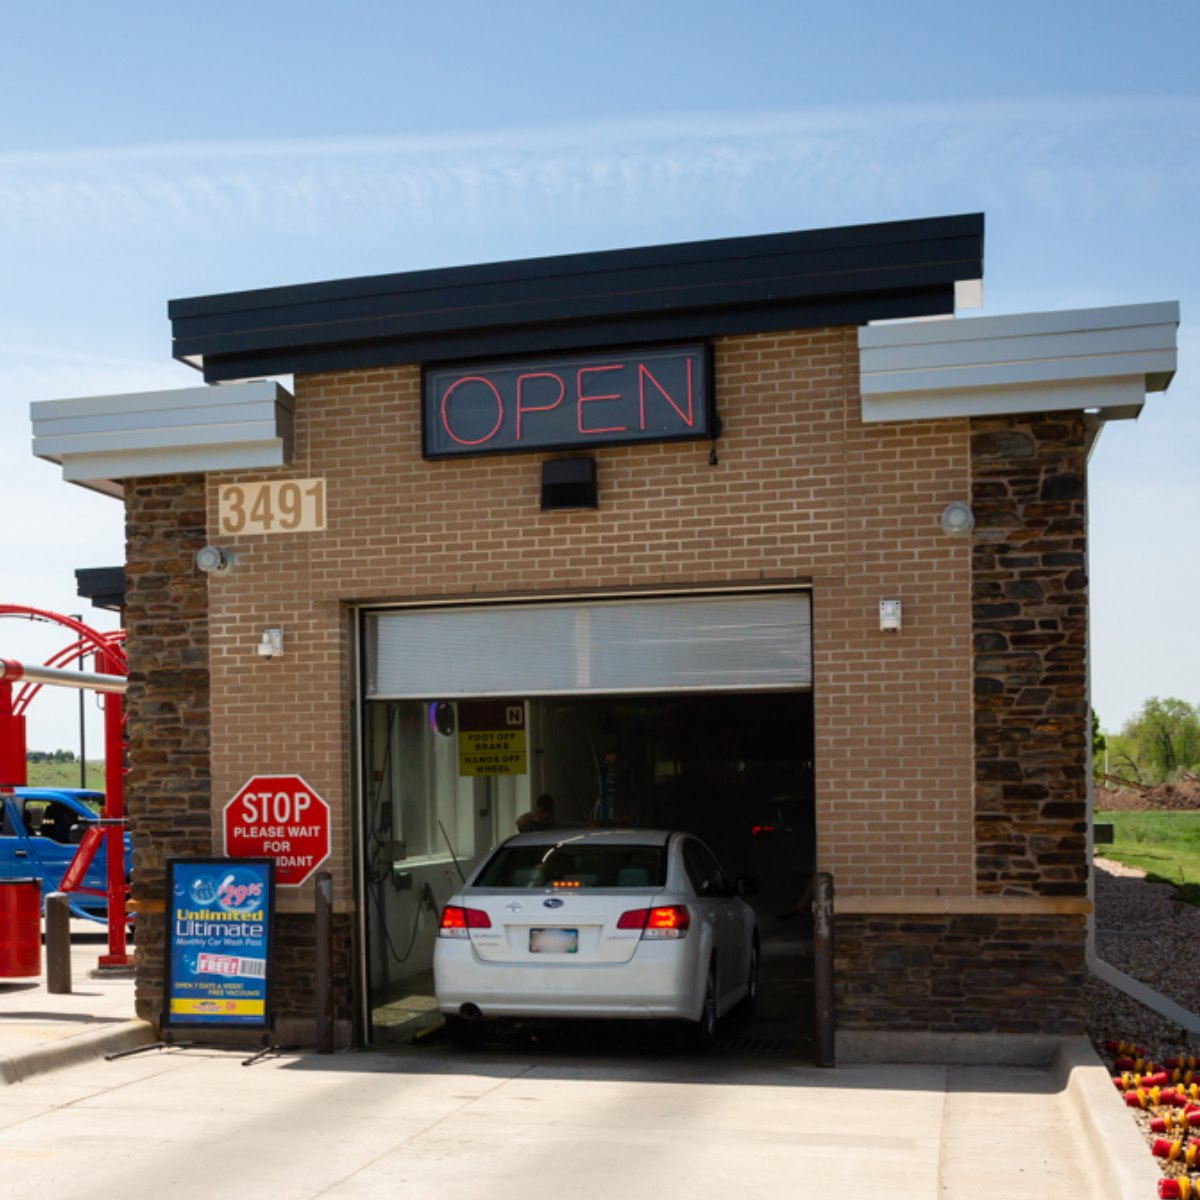 Last Day, Last Chance for this deal! Get a monthly car wash pass at Common Cents Super Tunnel Car Wash! A $32.95 value for only $9.97!